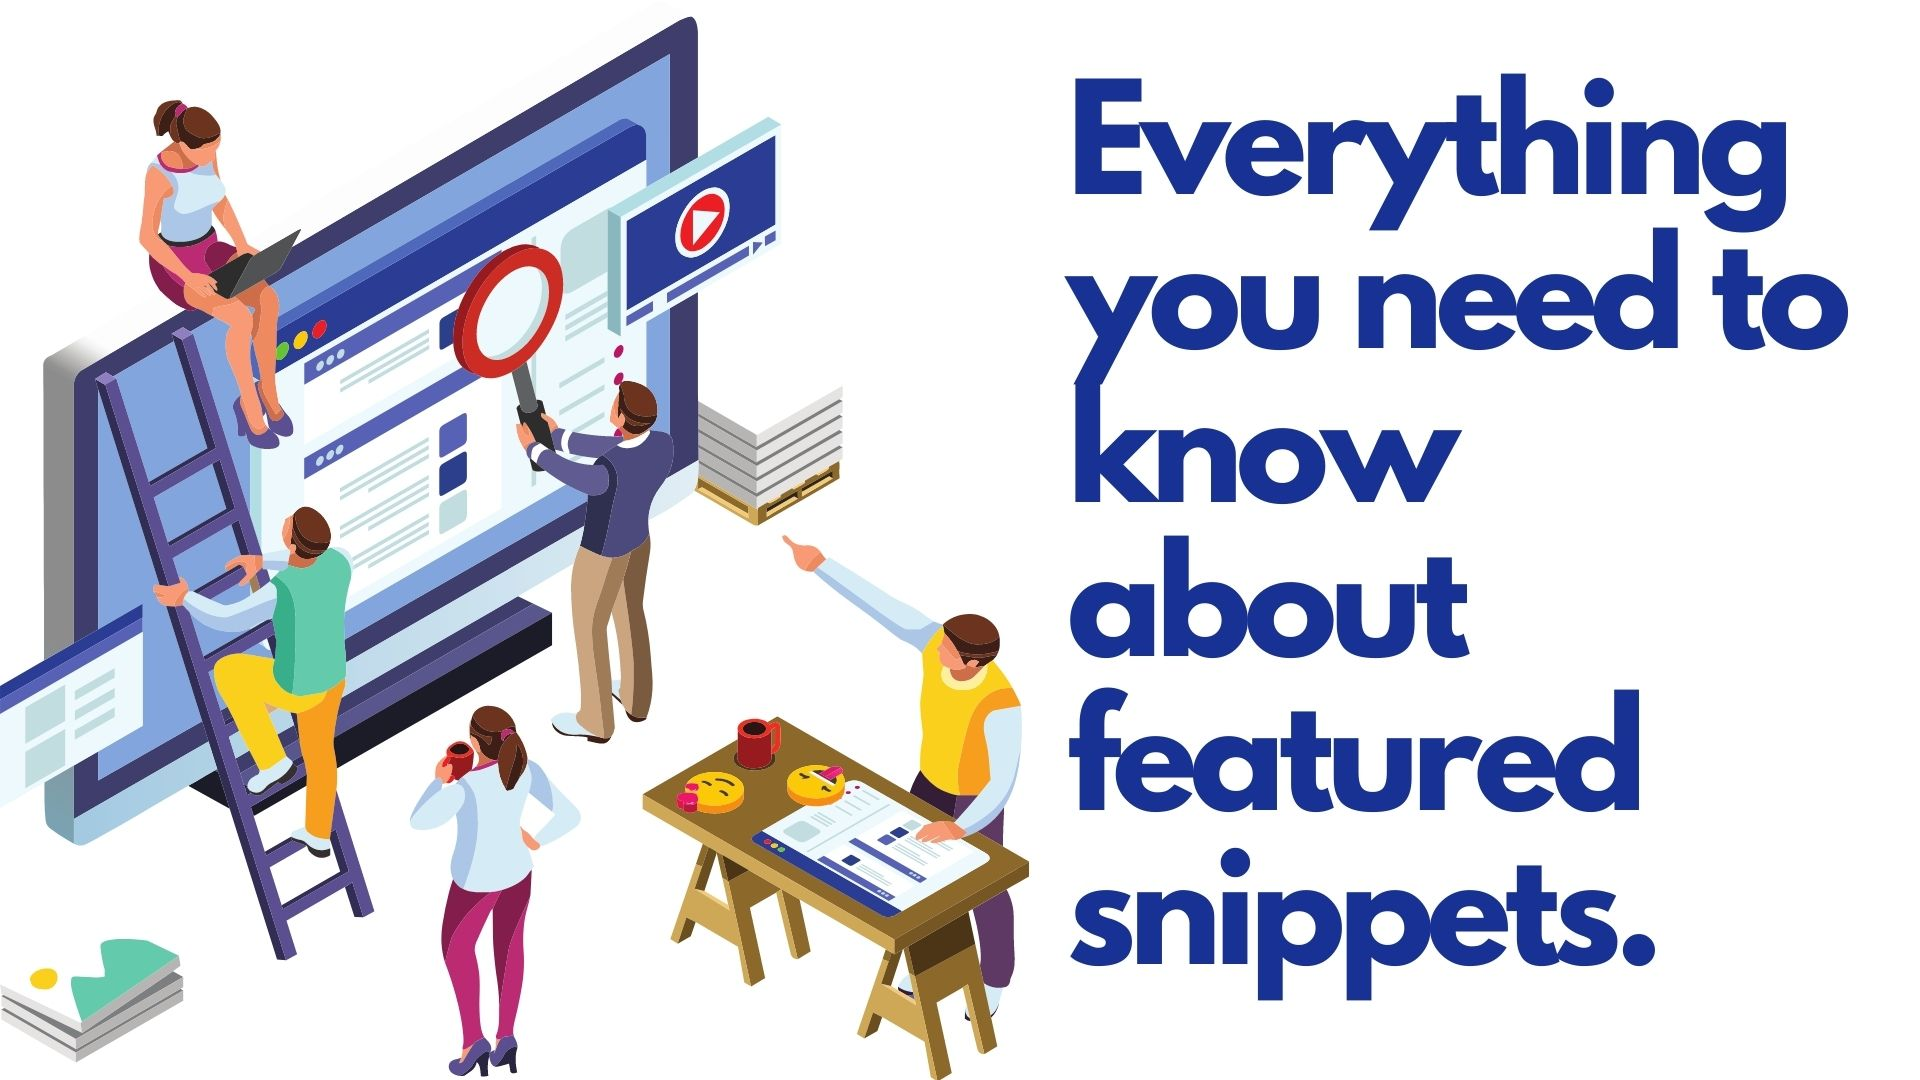 Everything you need to know about featured snippets.